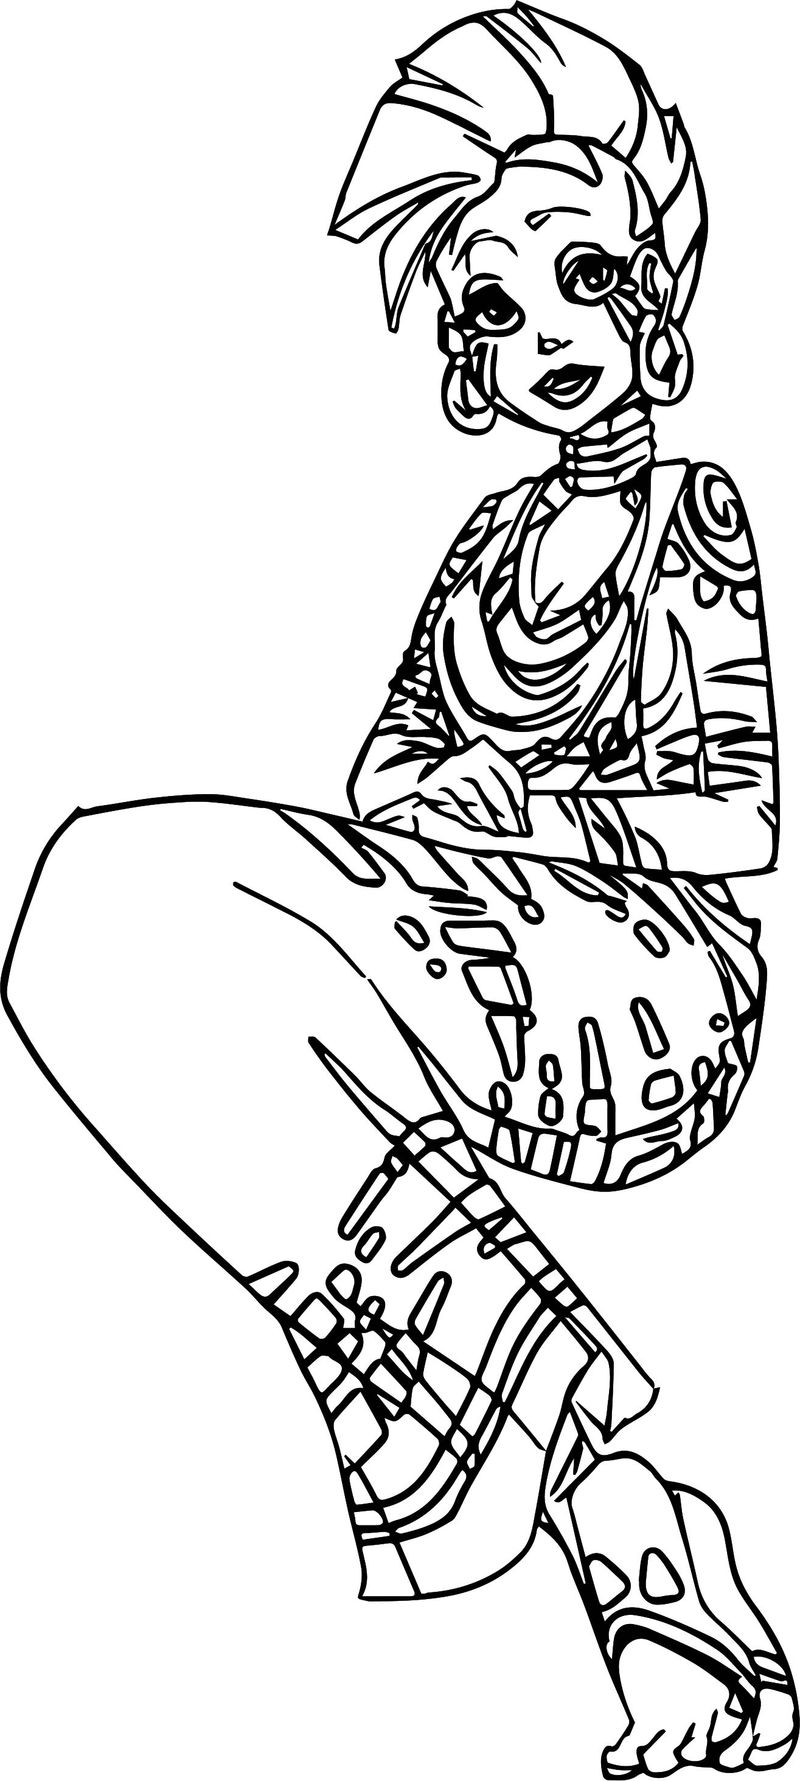 Zecora Girl Sitdown Coloring Page